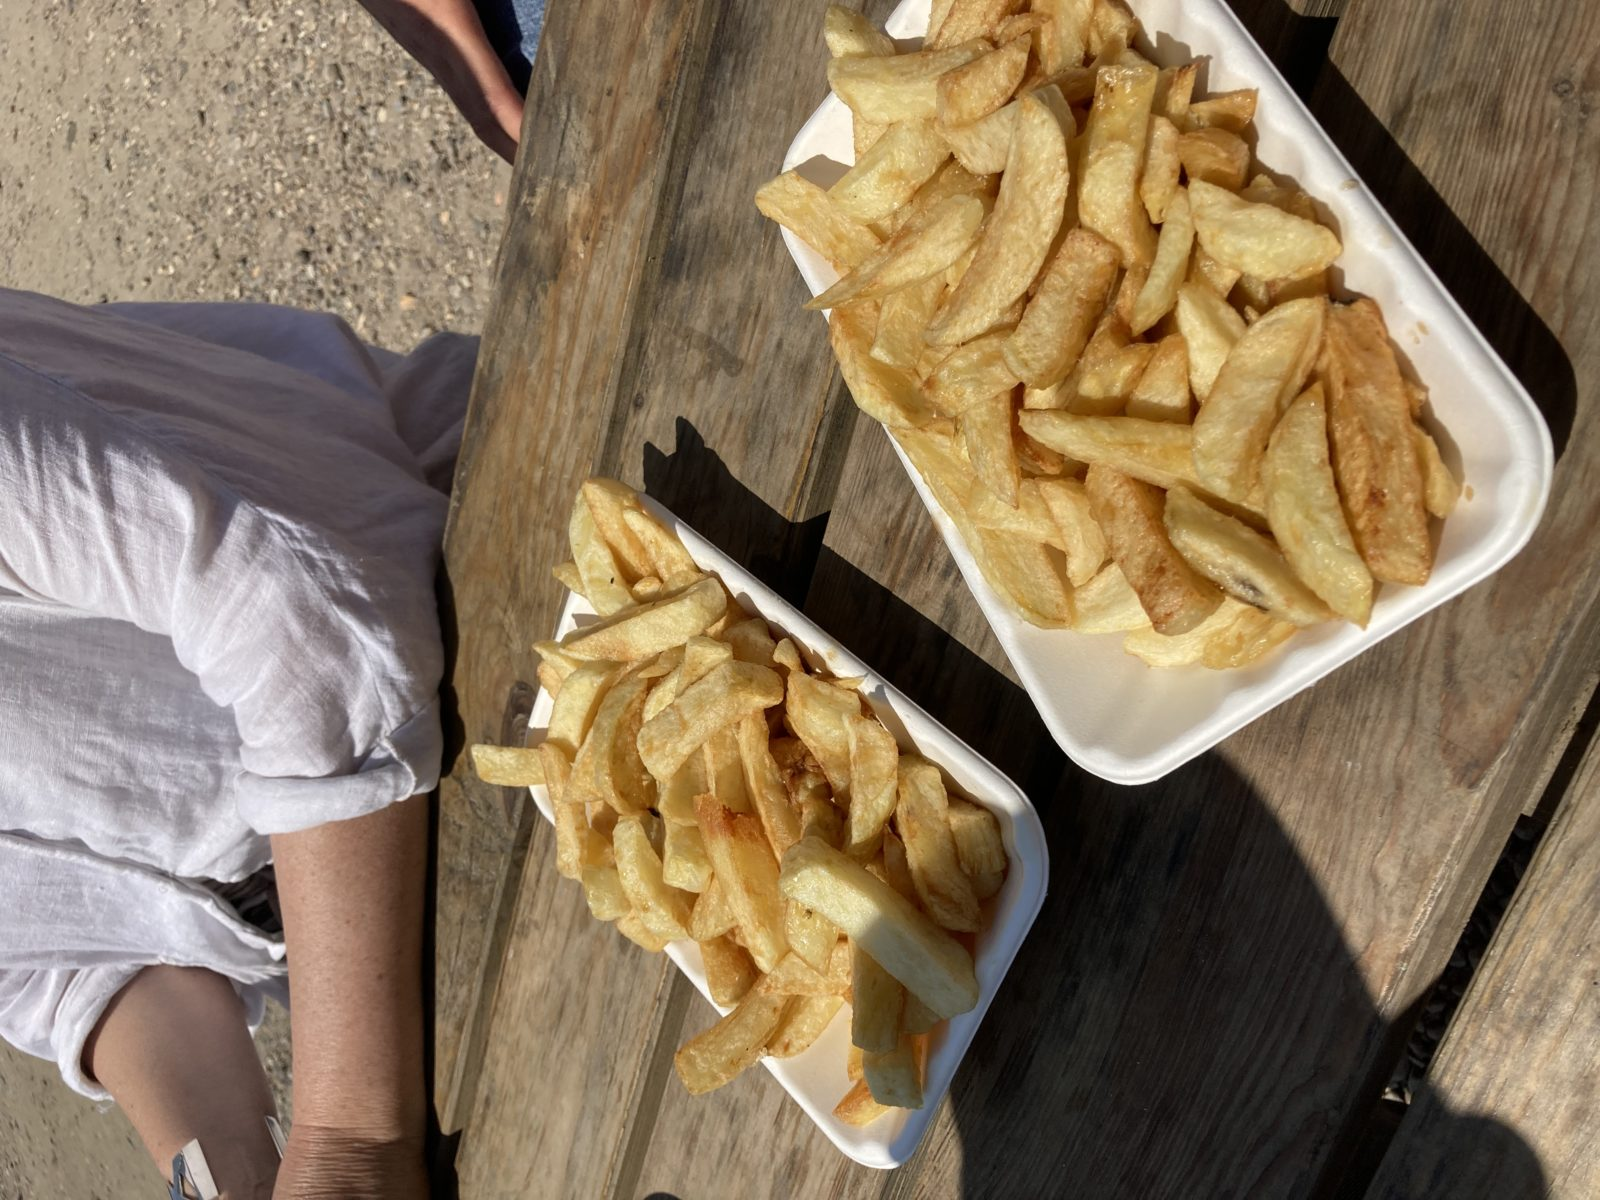 Mrs Ts Fish and Chips